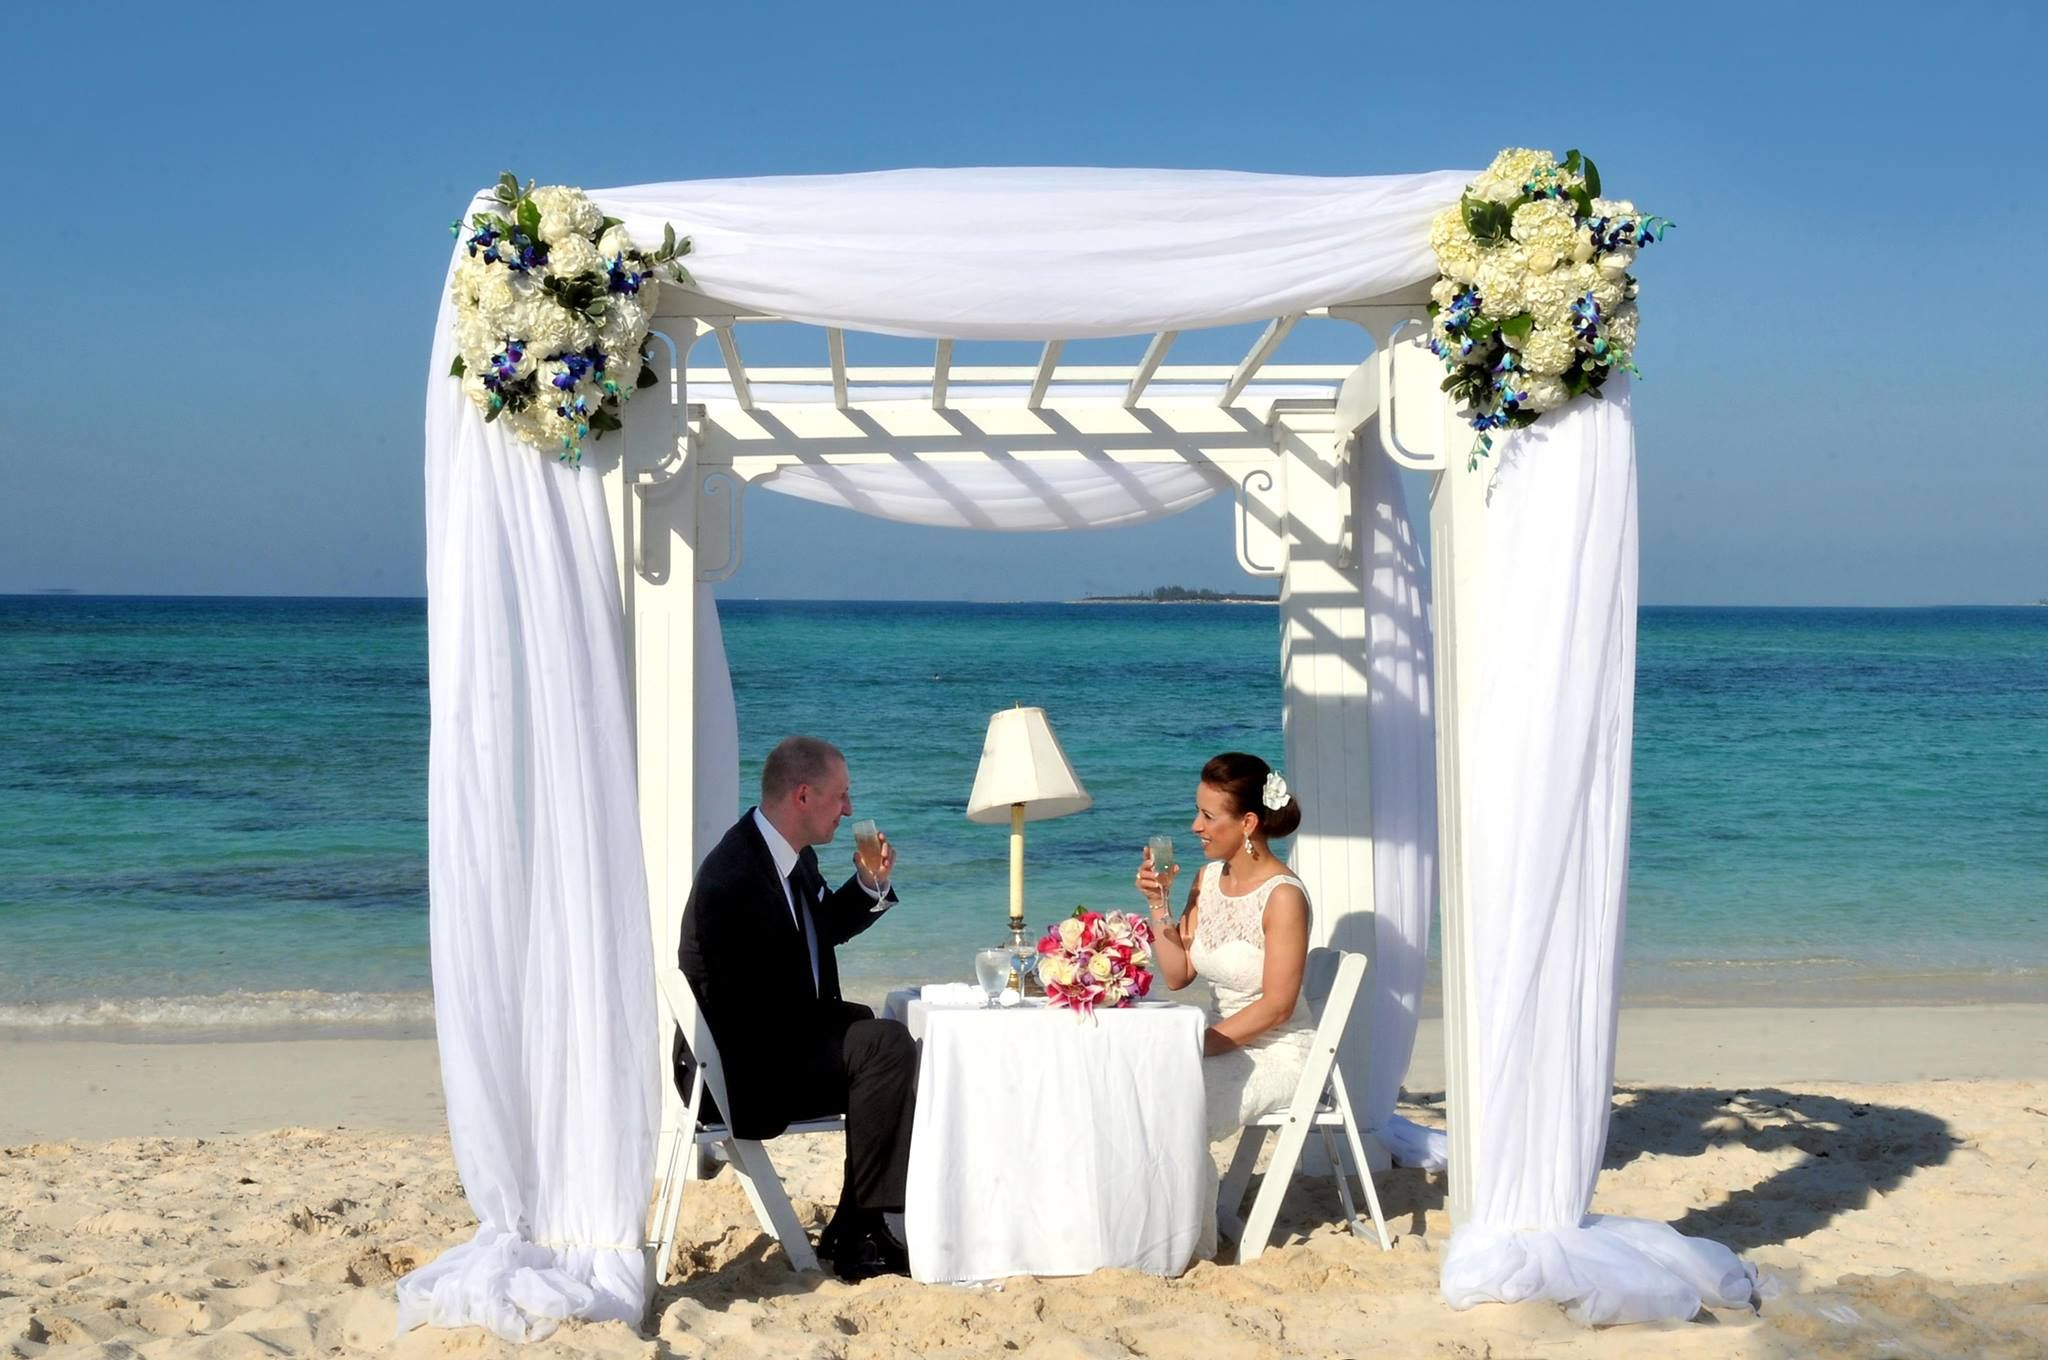 What A Cute Photo And Even Cuter Couple At Their Bahamas Wedding Bahamas Wedding Wedding Photo Gallery Island Weddings